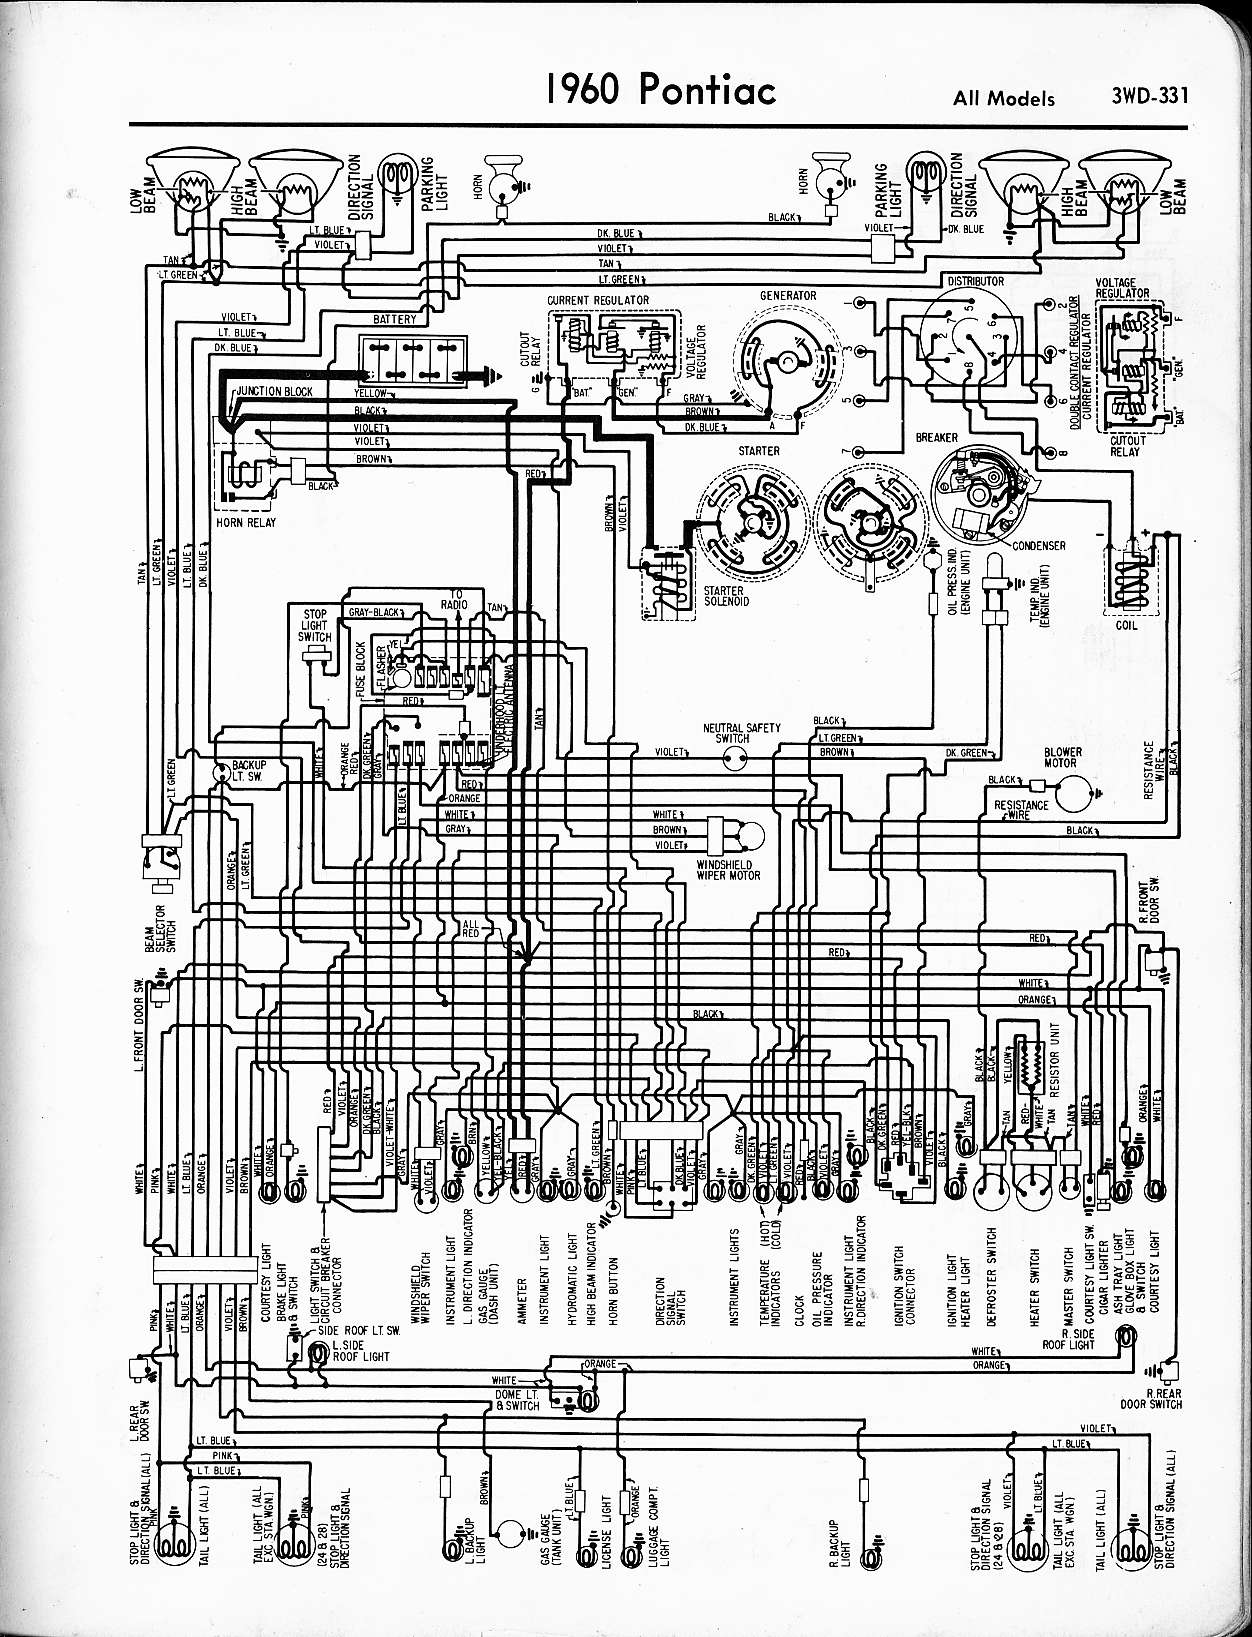 1972 pontiac gto wiring diagram | wiring library 1970 pontiac gto wiring harness diagram 1967 gto wiring harness diagram